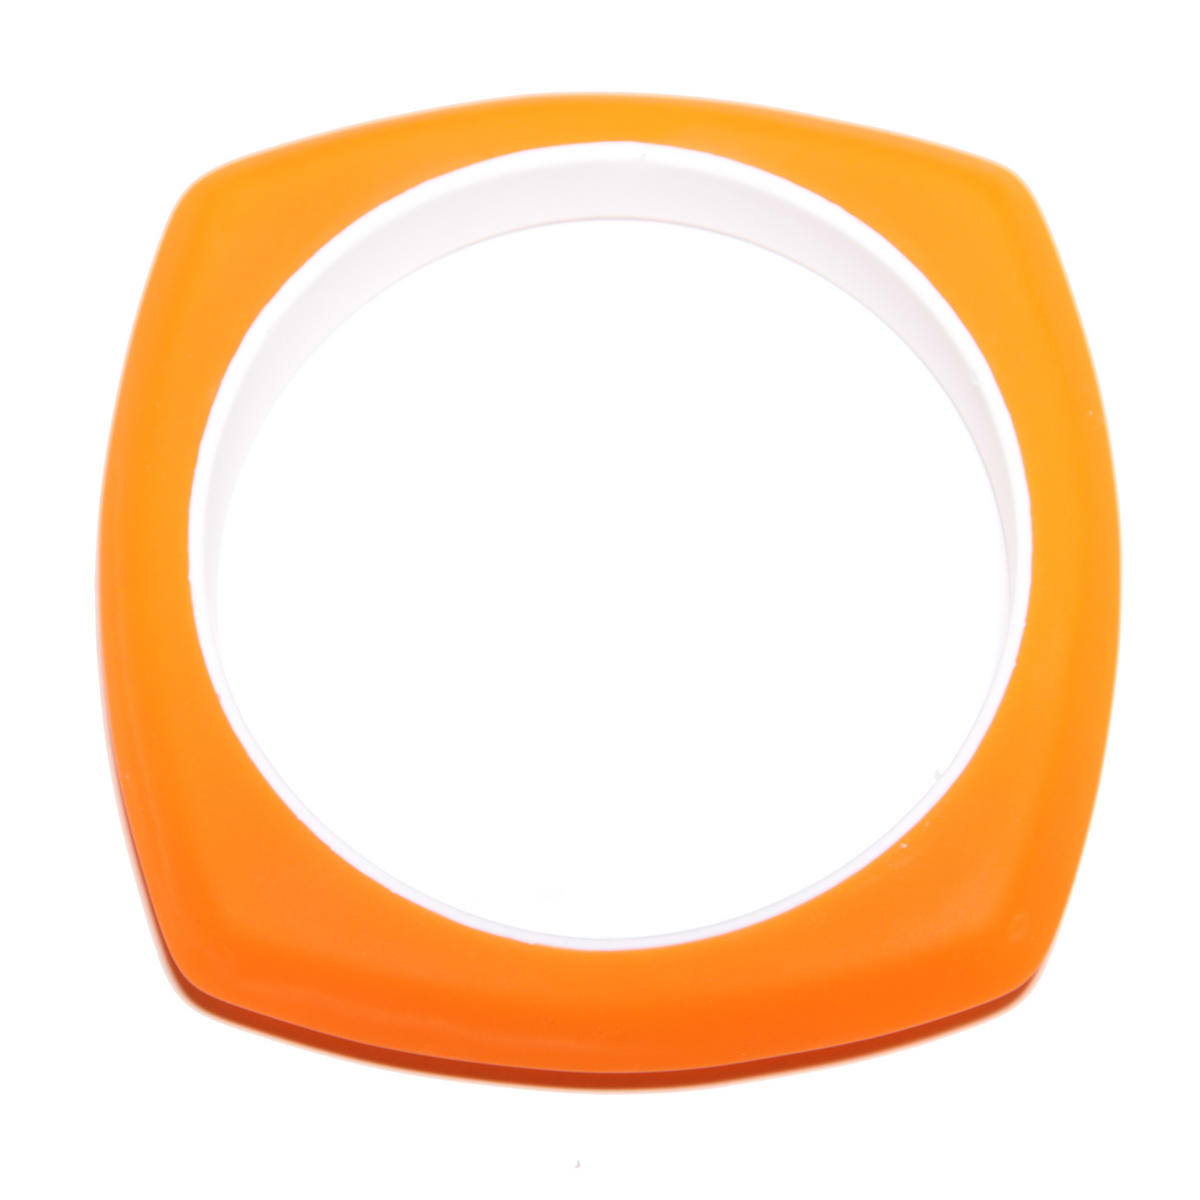 Neon Orange Rubber Bracelet Preview